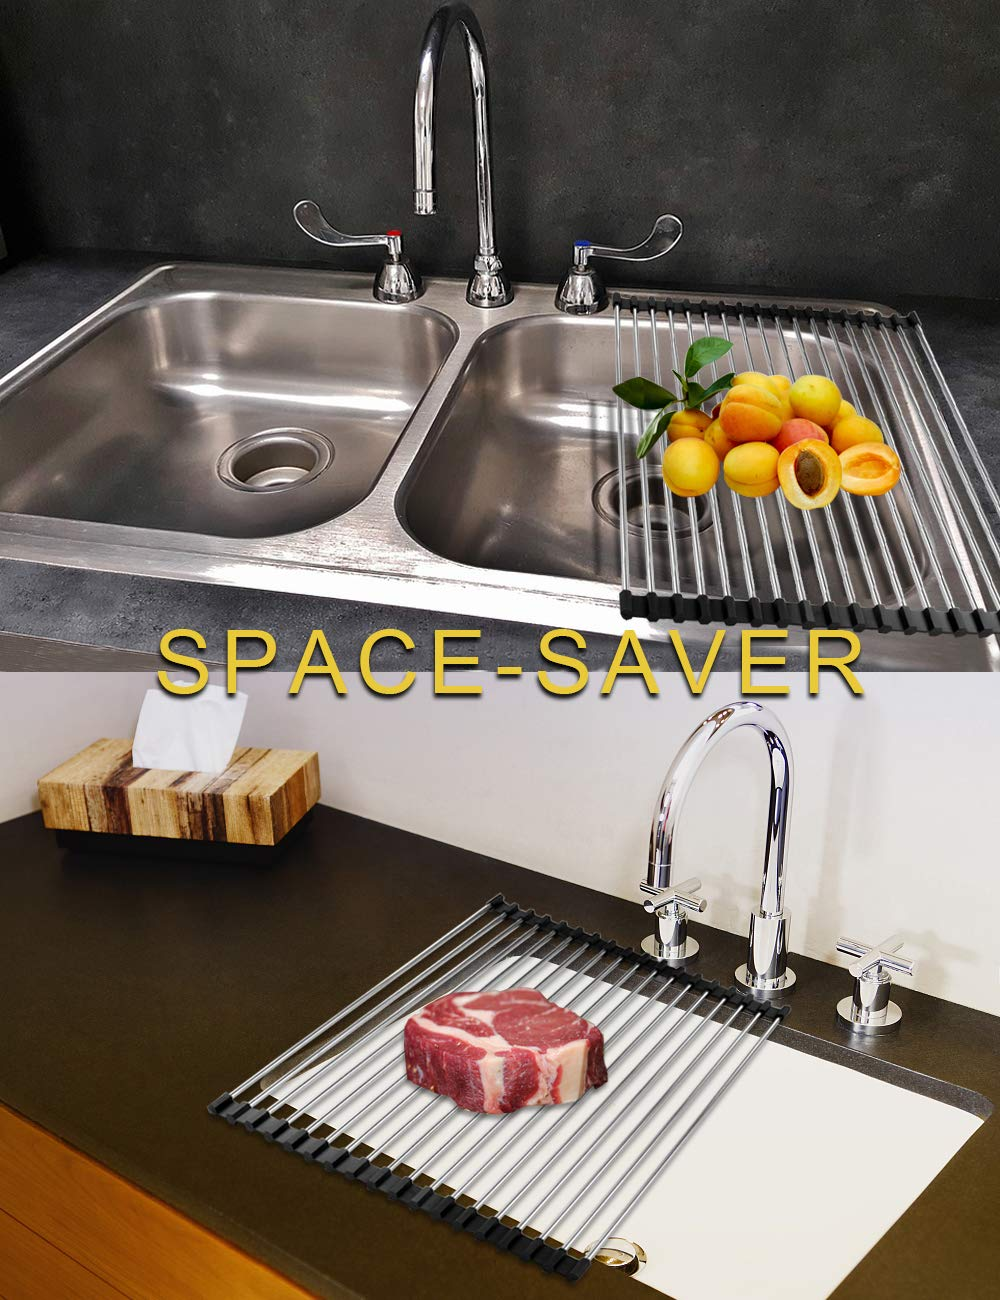 Roll-Up Dish Drying Rack Stainless Steel Over the Sink Multipurpose Folding Rack Dry Dishes Organizer Silicone Coated Rims Kitchen Sink Rack for Pans Bottles Bowls Vegetable x 13.5 W 14.5 14.5 L W ect ect L x 13.5